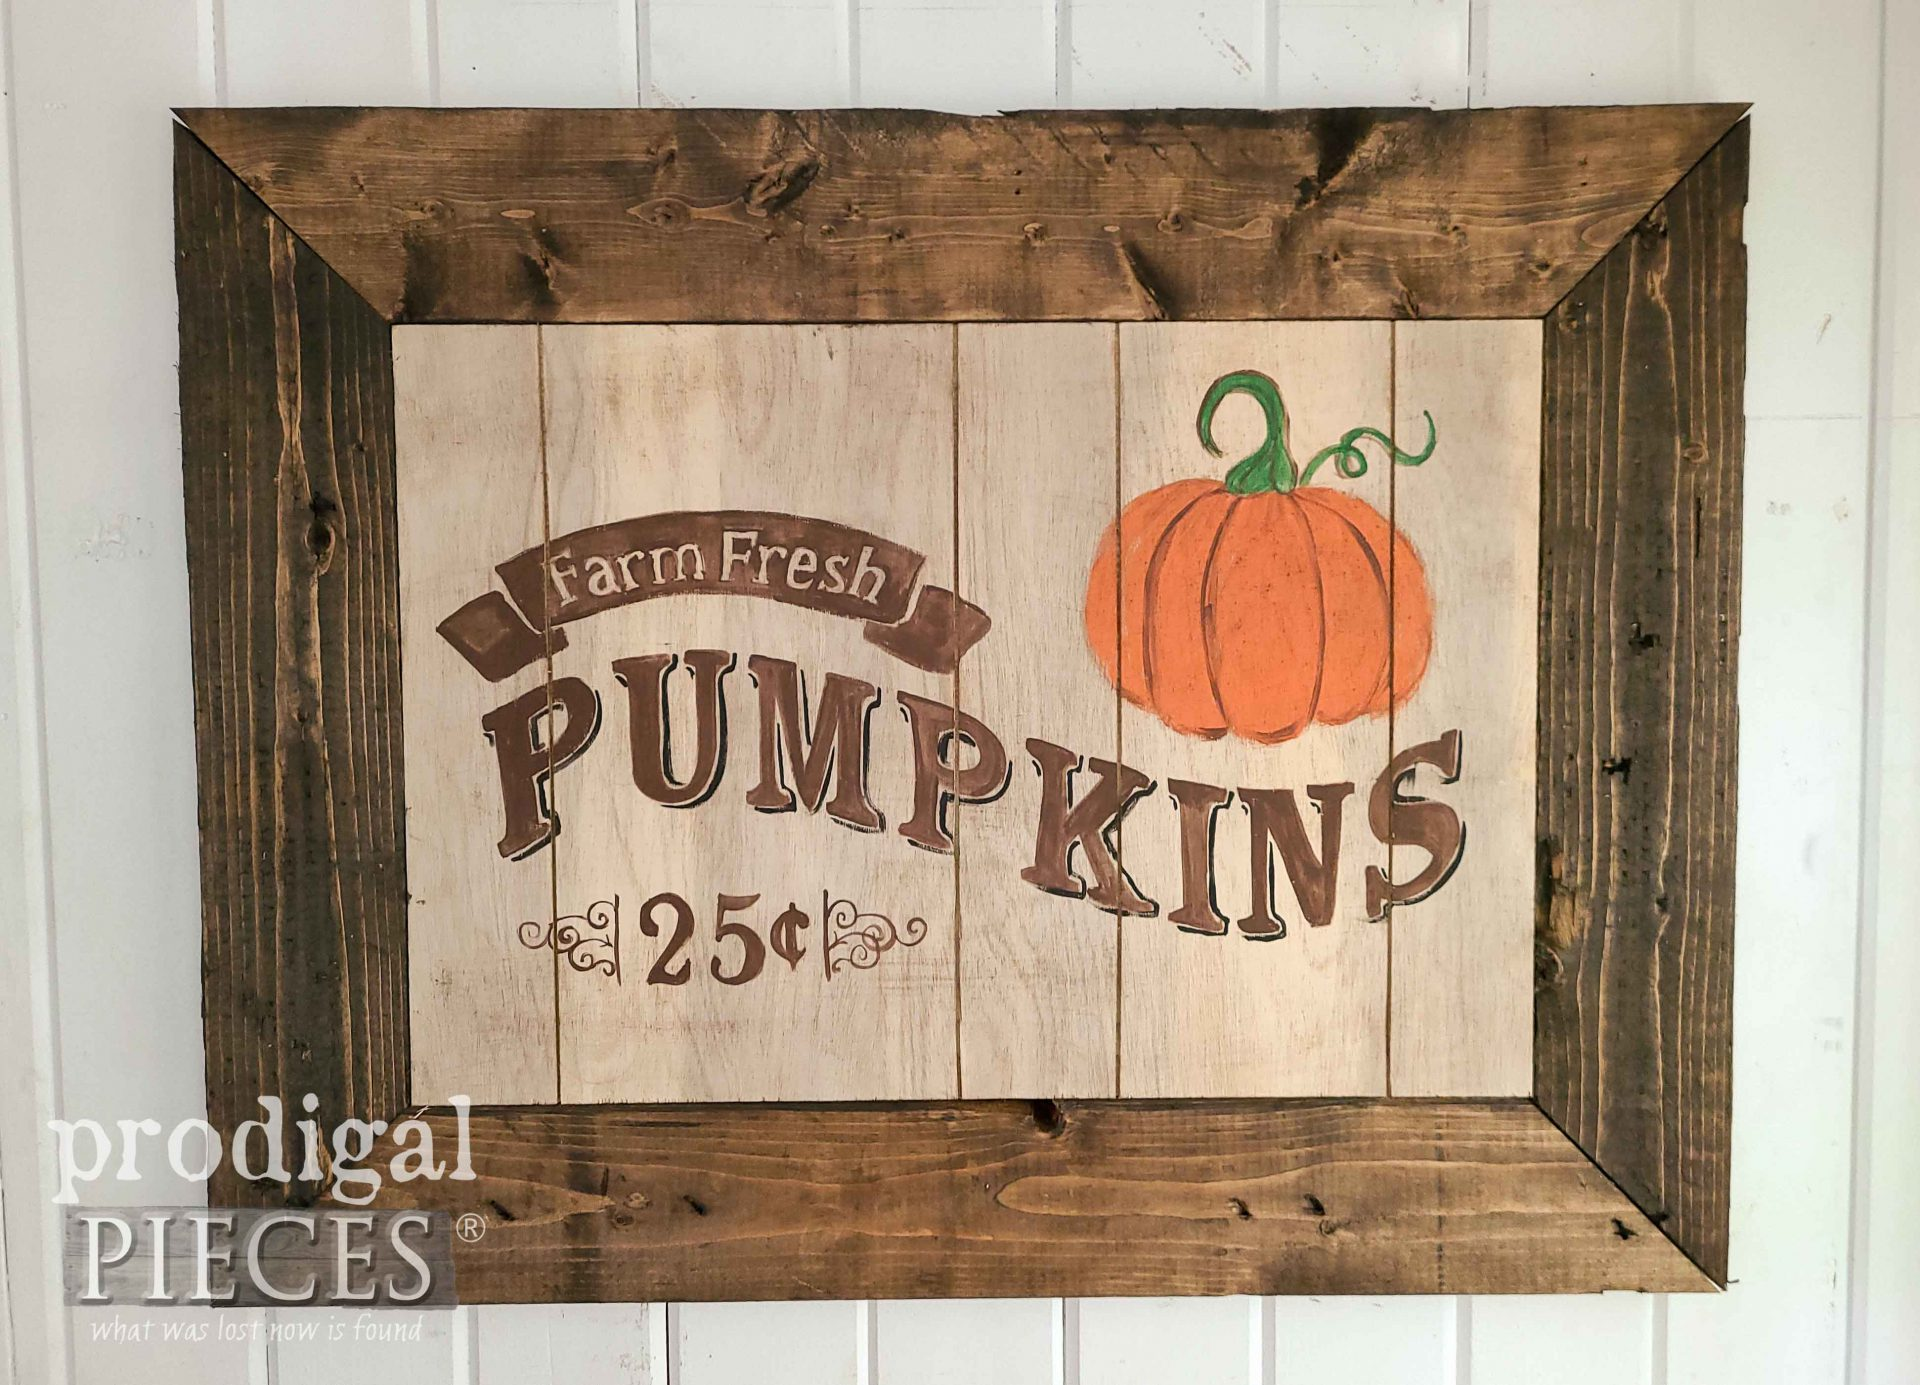 Rustic Farmhouse Harvest Sign with Pumpkin by Prodigal Pieces | prodigalpieces.com #prodigalpieces #fall #home #diy #reclaimed #homedecor